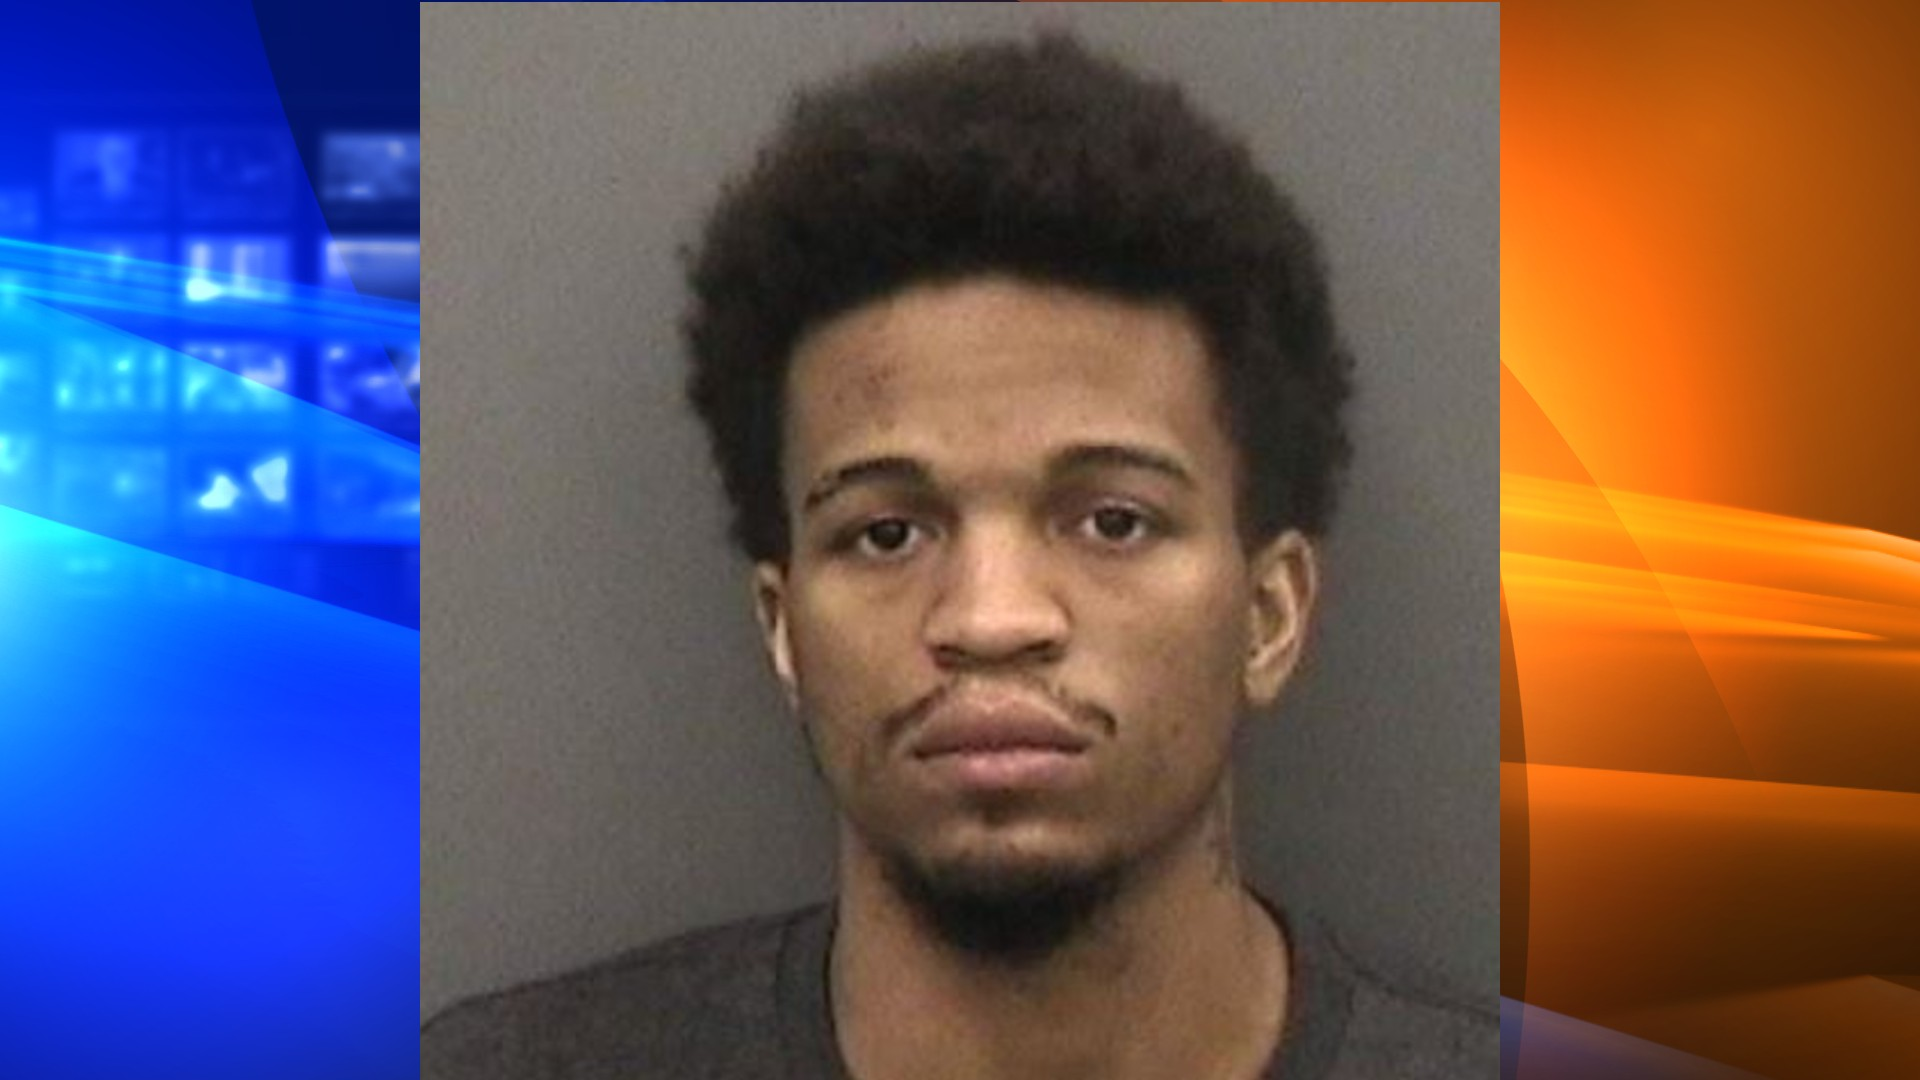 Corey Pujols is seen in a booking photo released by the Hillsborough County Sheriff's Office.